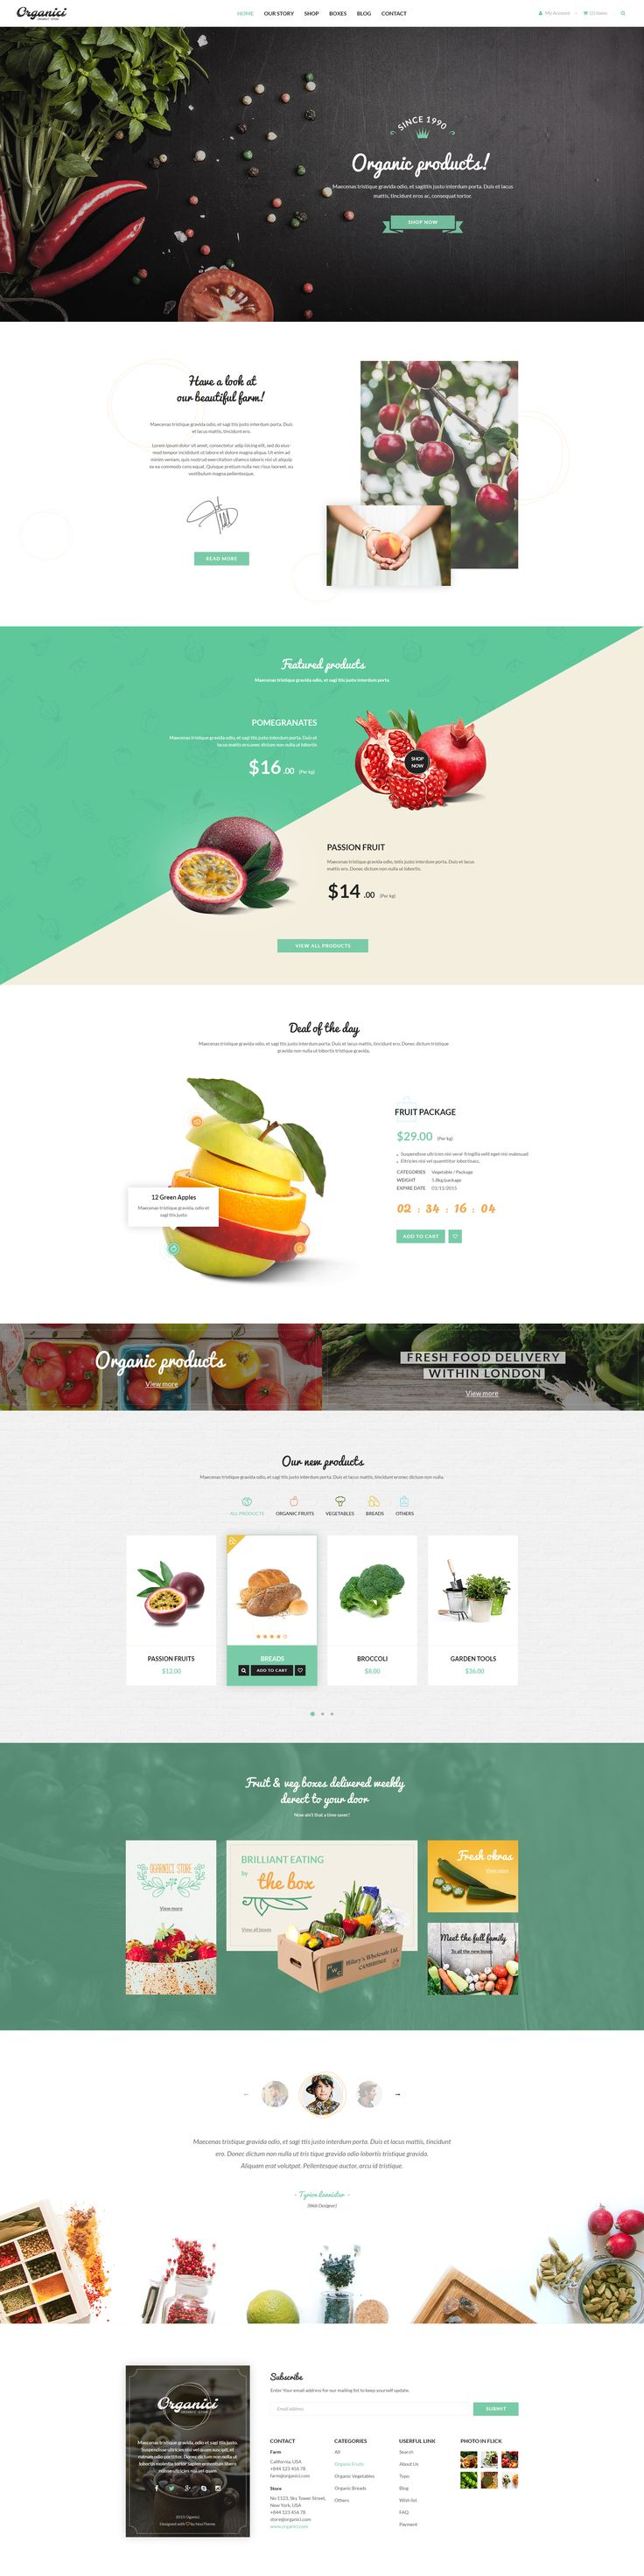 Organici is the premium #PSD #template for #Organic Food Shop. The template includes essential pages for a Organic Store: Shop, Product Detail, Shopping Cart, Checkout, Blog, Contact.  15 PSD files in total. Download Now➝ http://themeforest.net/item/organici-organic-store-psd-template/13558051?ref=Datasata